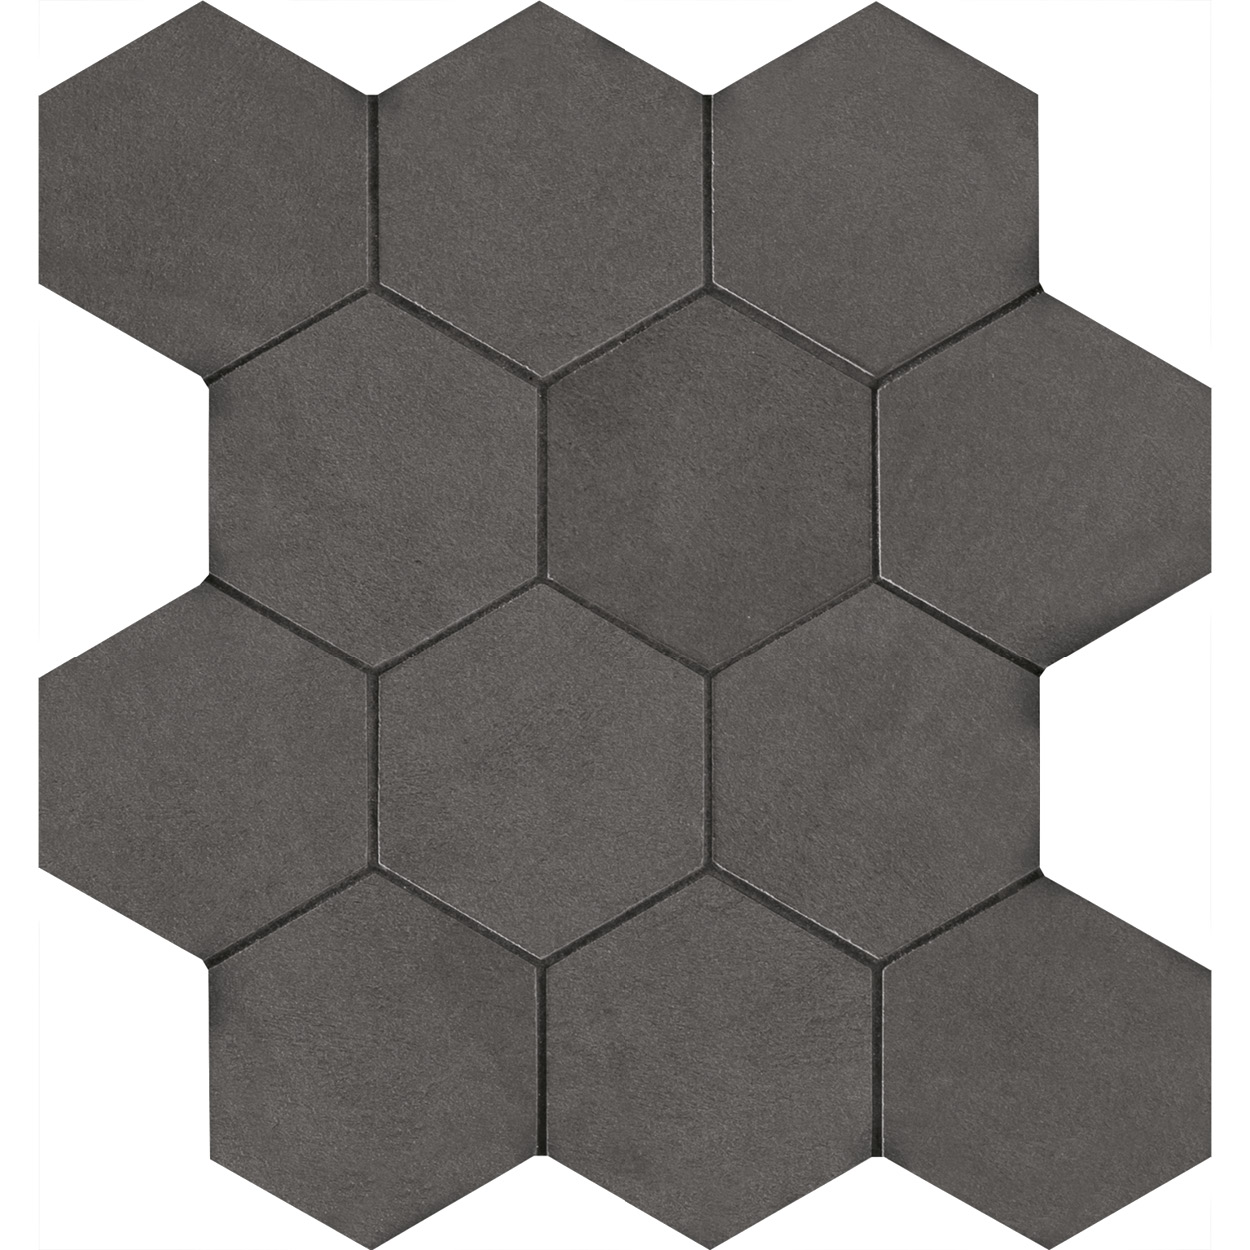 3 X 3 Seamless CL_03 hexagon